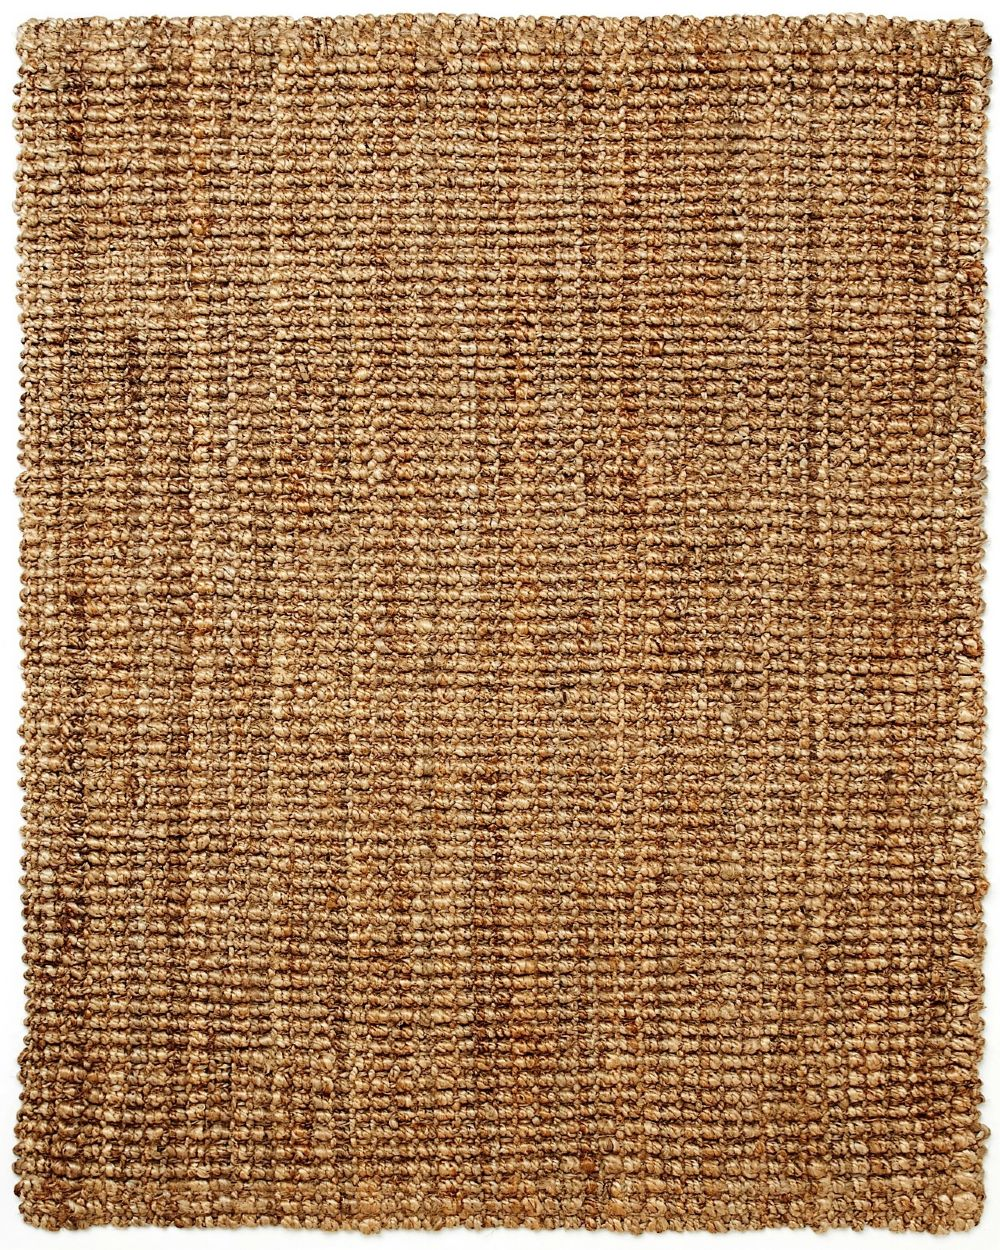 anji mountain everest natural fiber area rug collection